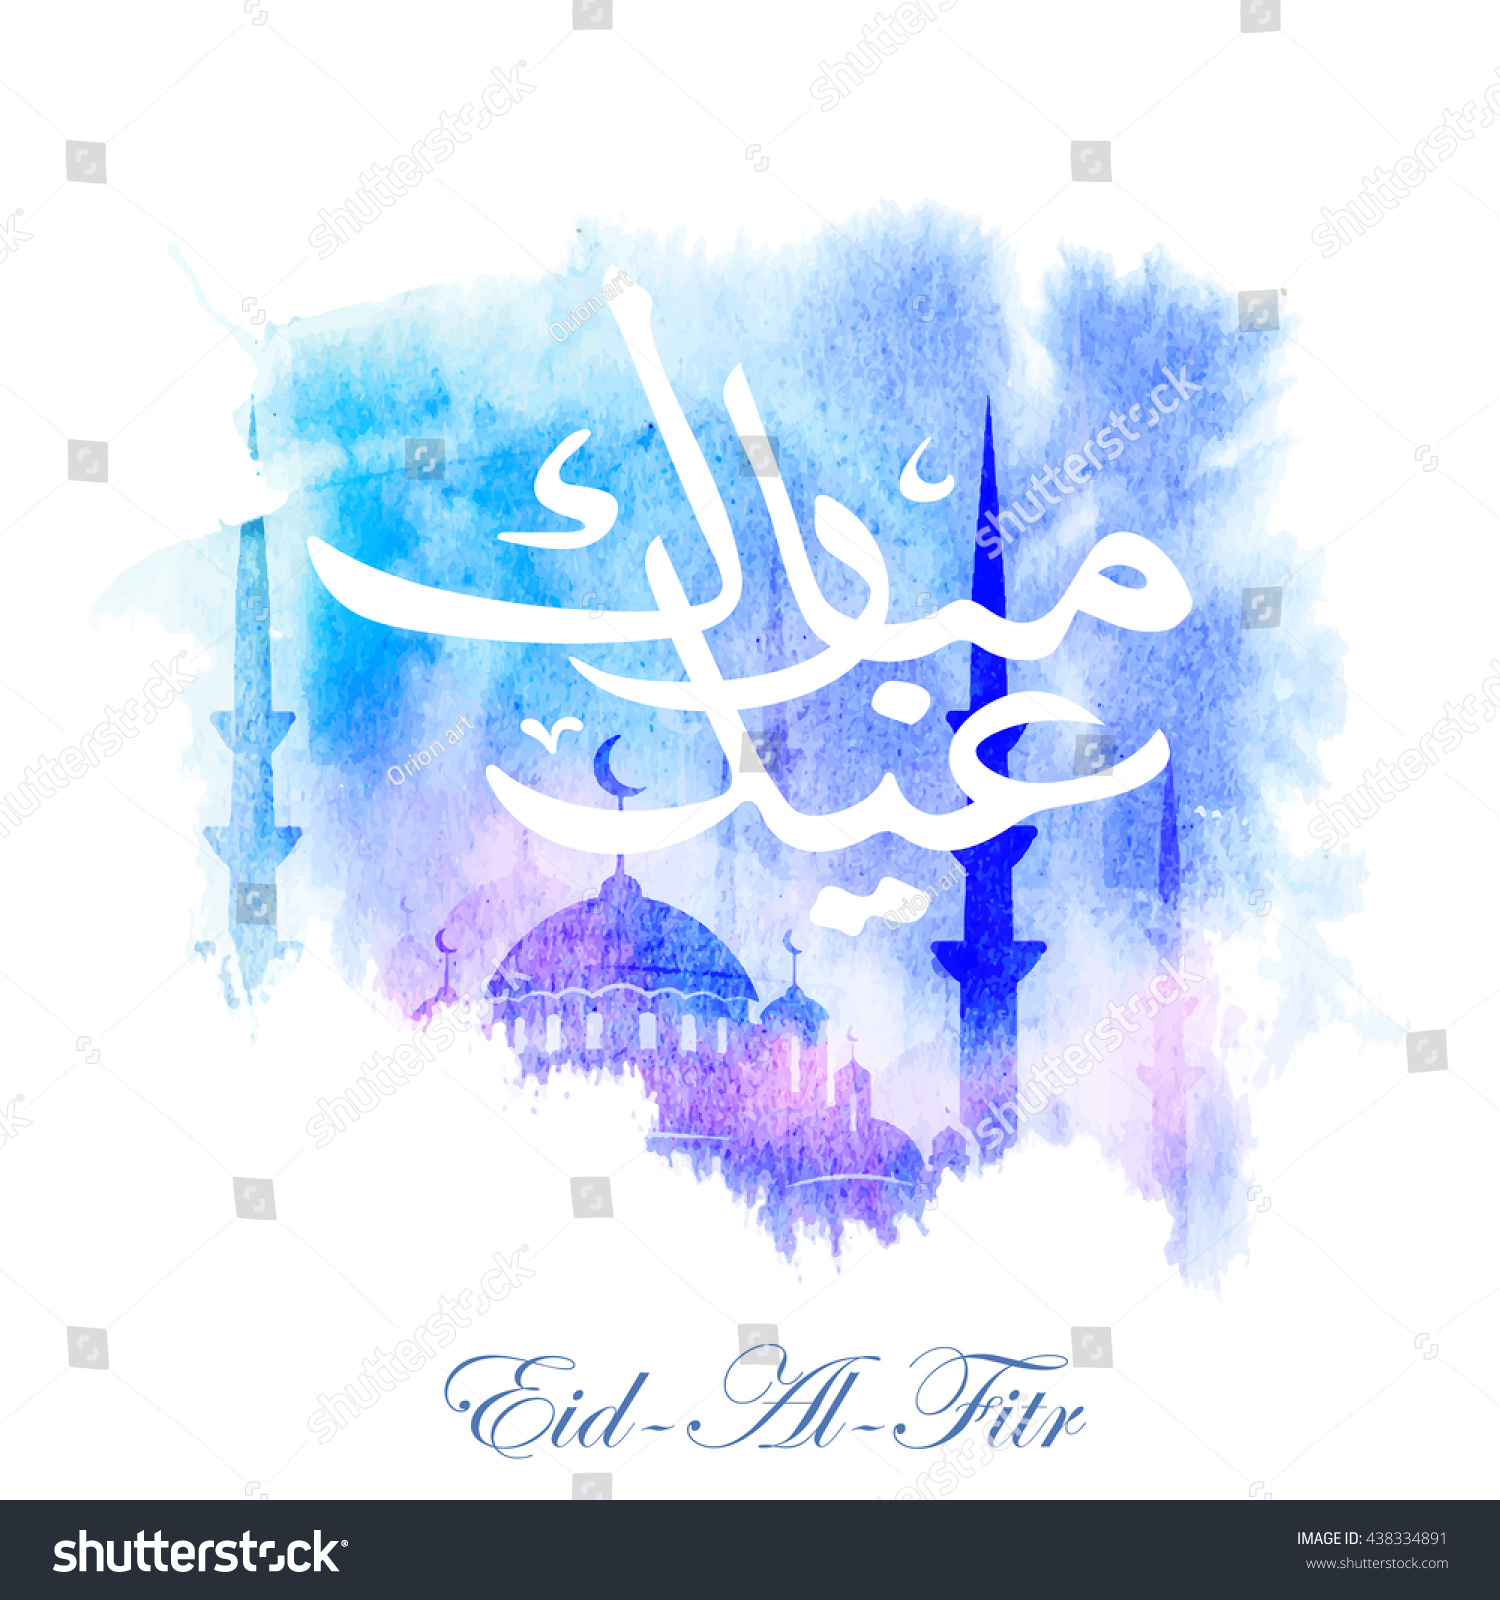 Calligraphy arabic text eid al fitr stock illustration 438334891 calligraphy of arabic text eid al fitr feast of breaking the fast kristyandbryce Choice Image